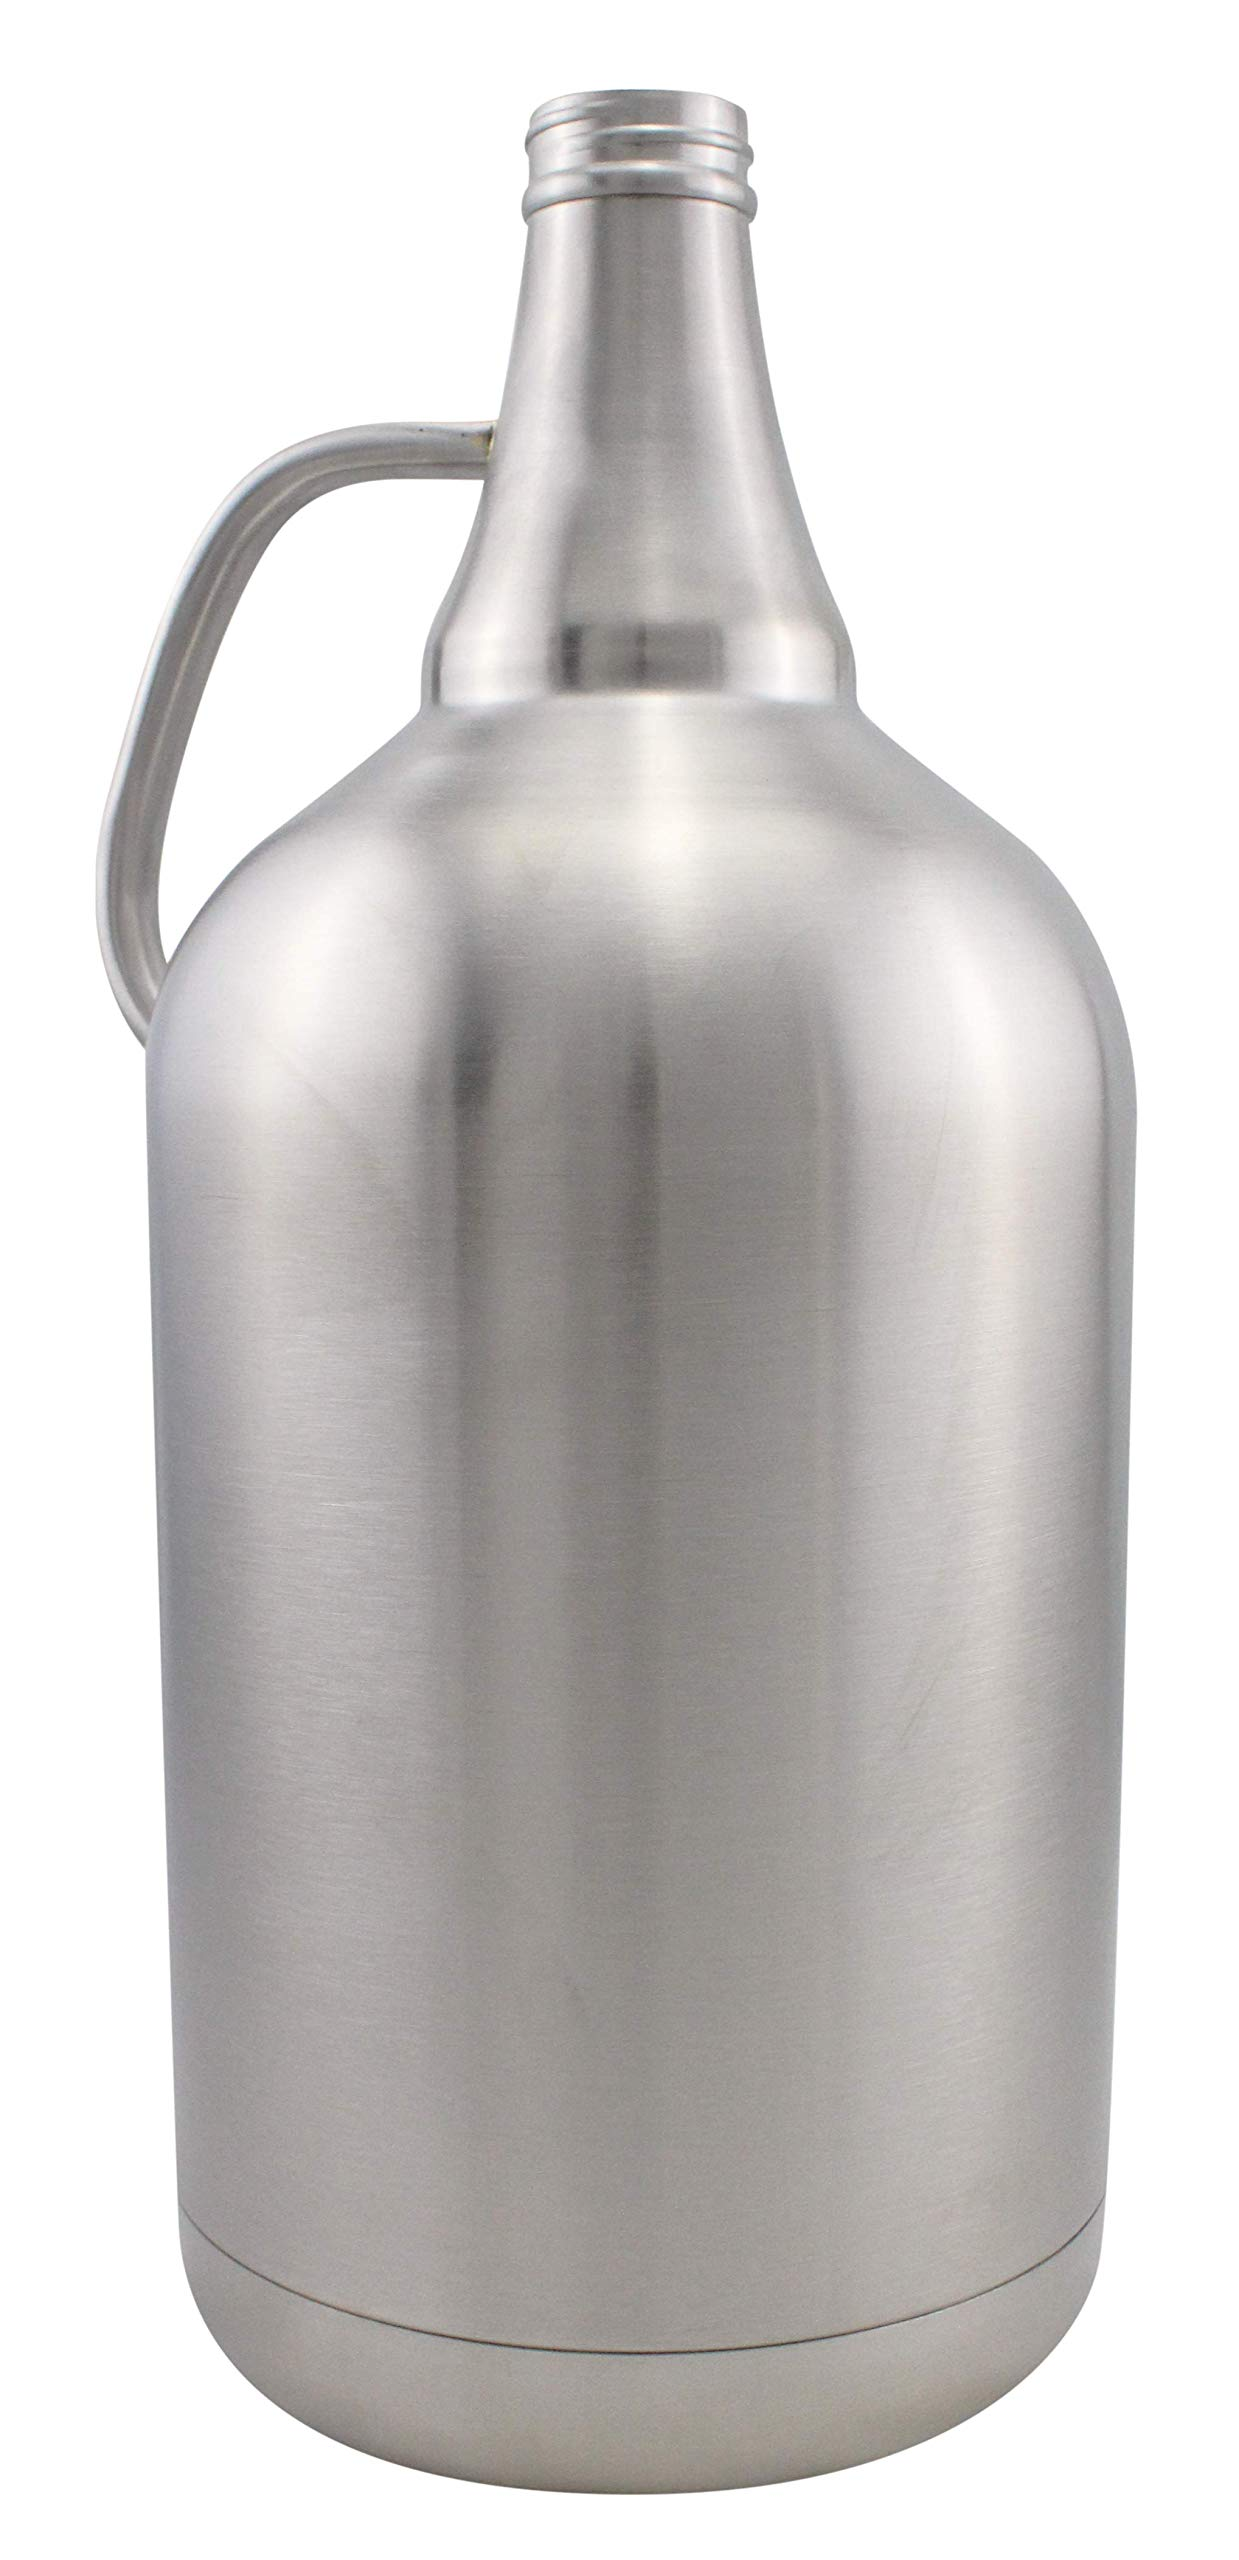 128oz Stainless Steel Insulated Beer Growler by Spotted Dog Company